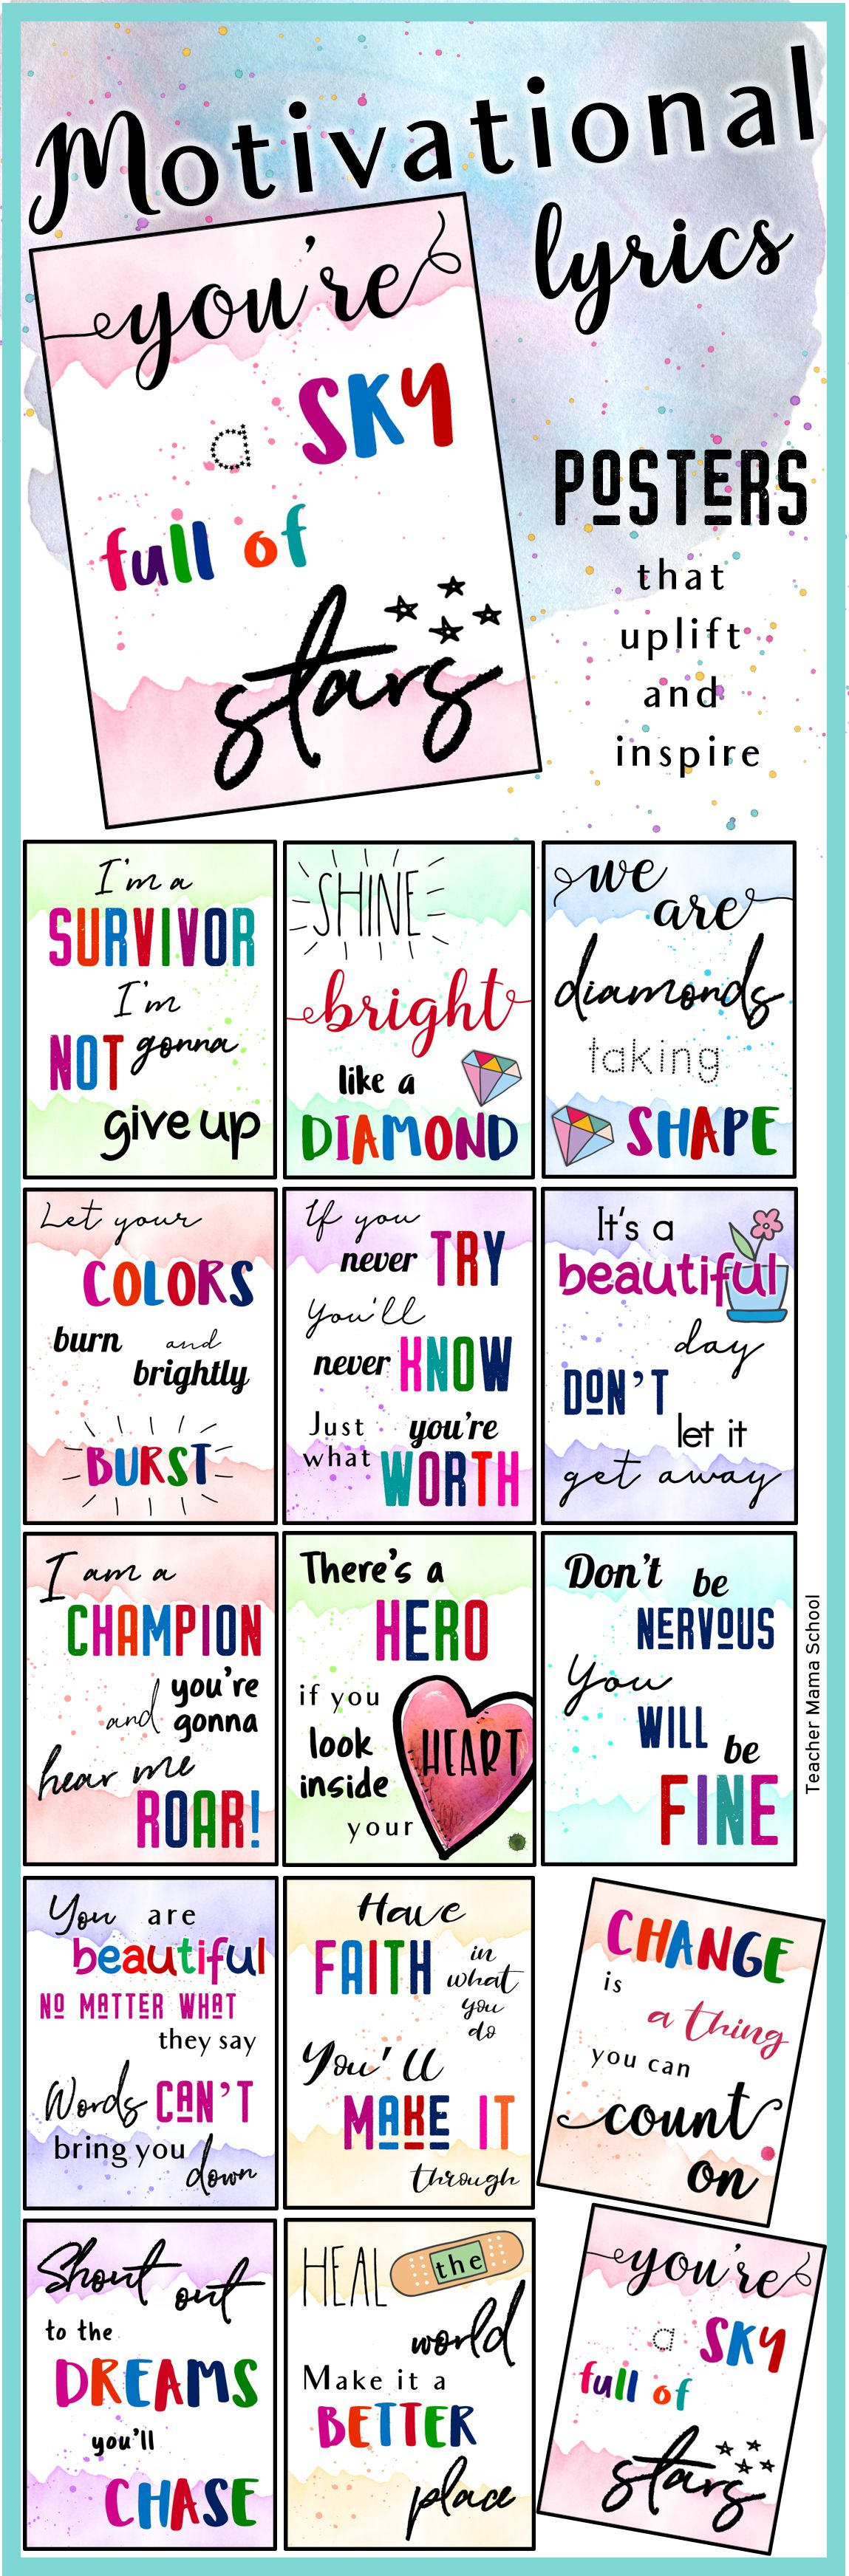 Motivational Quotes Posters Song Lyrics In Watercolor Motivational Song Lyrics Motivational Quote Posters Motivational Songs